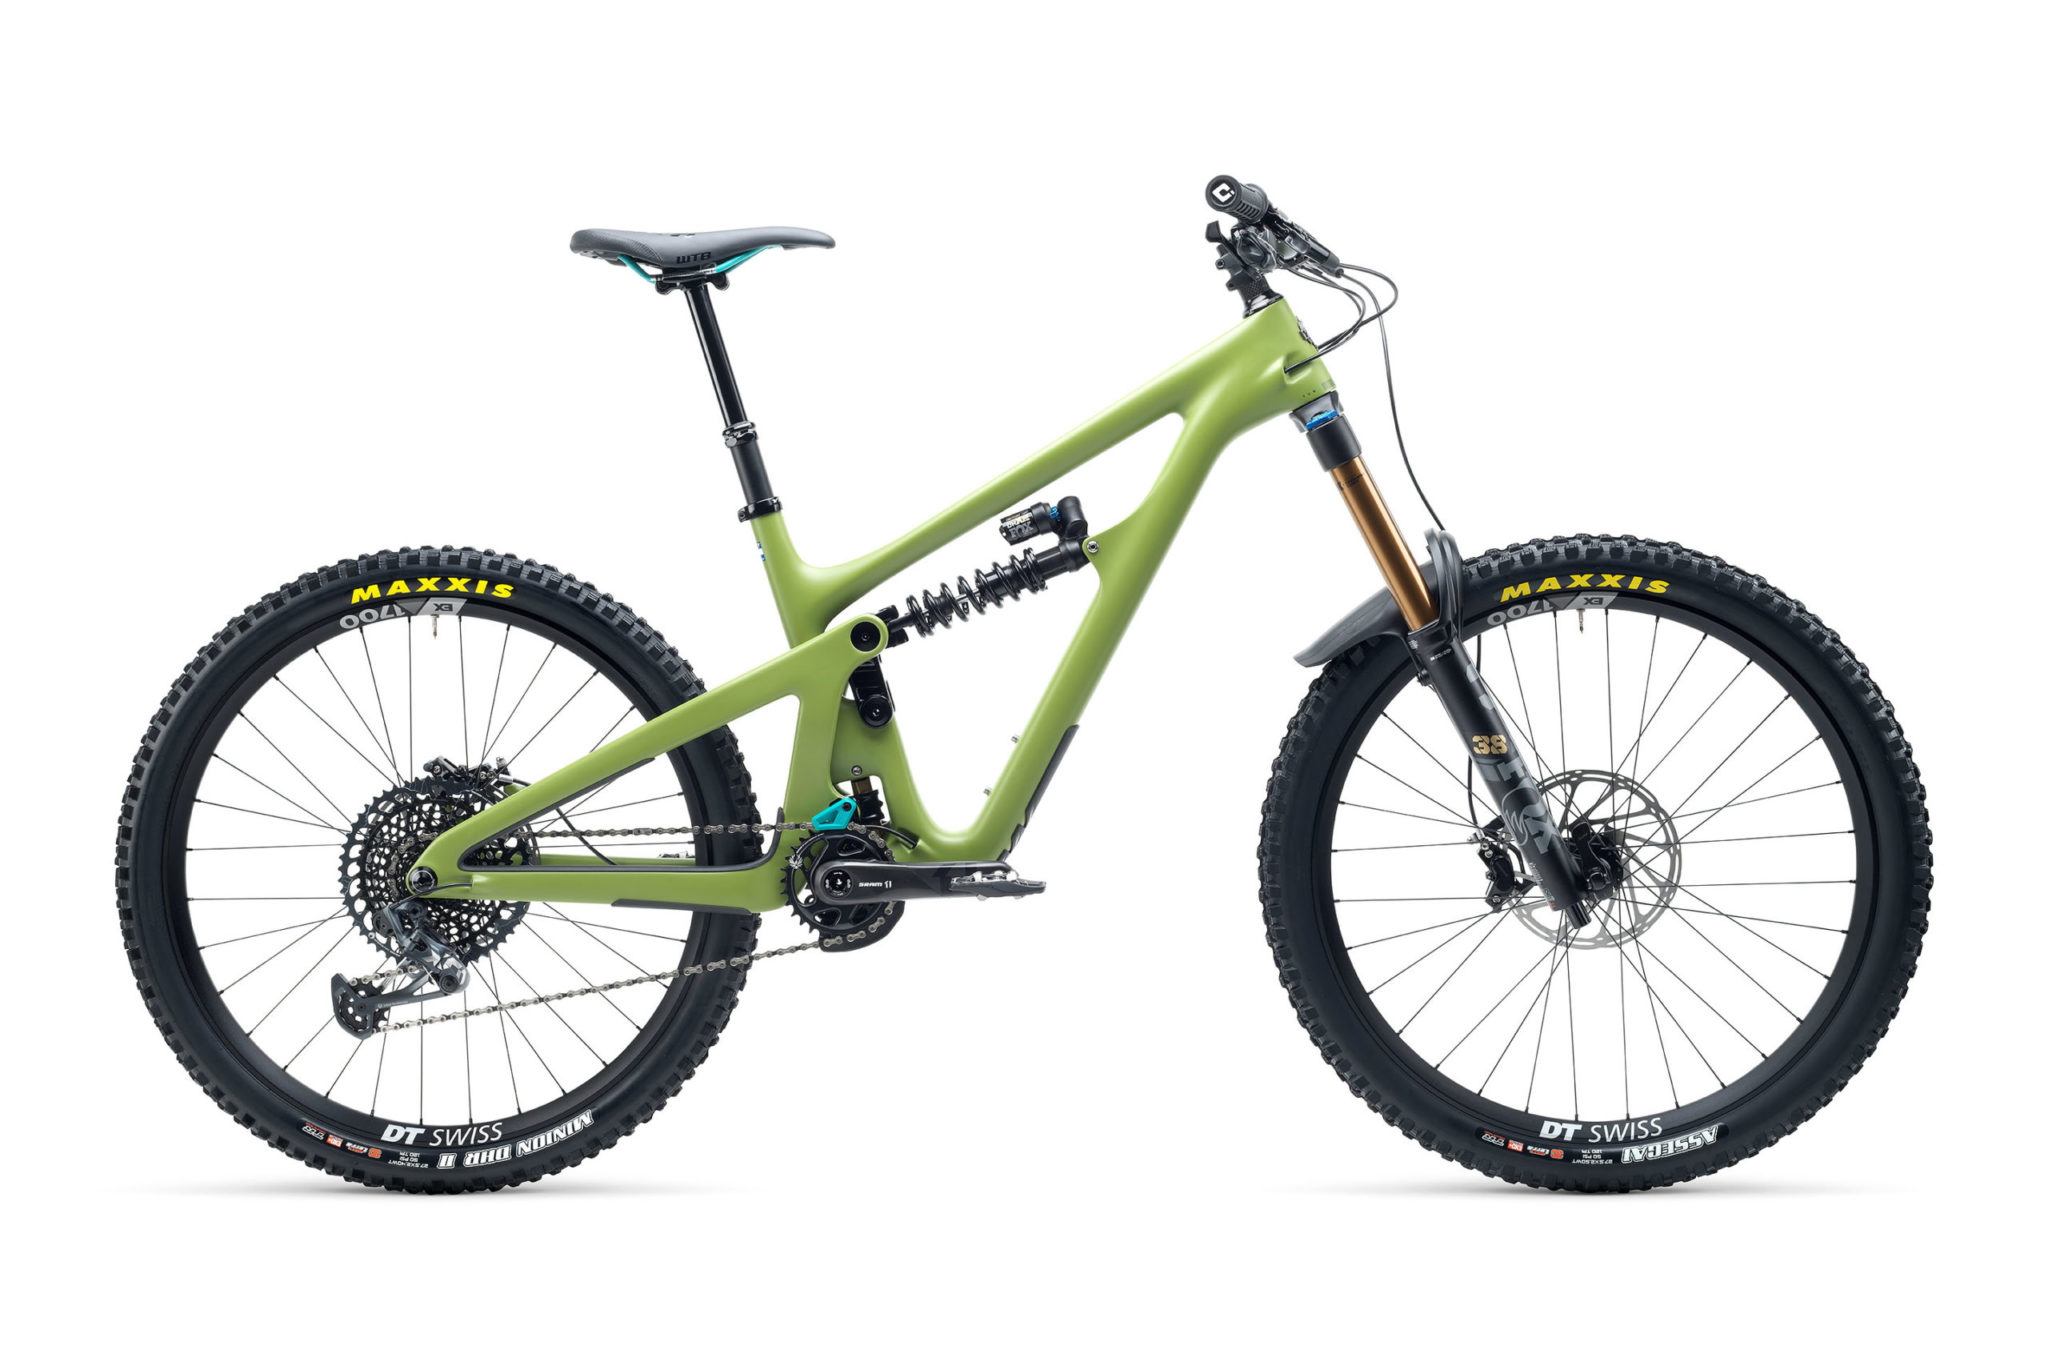 2021 YetiCycles SB165 T2 Moss scaled